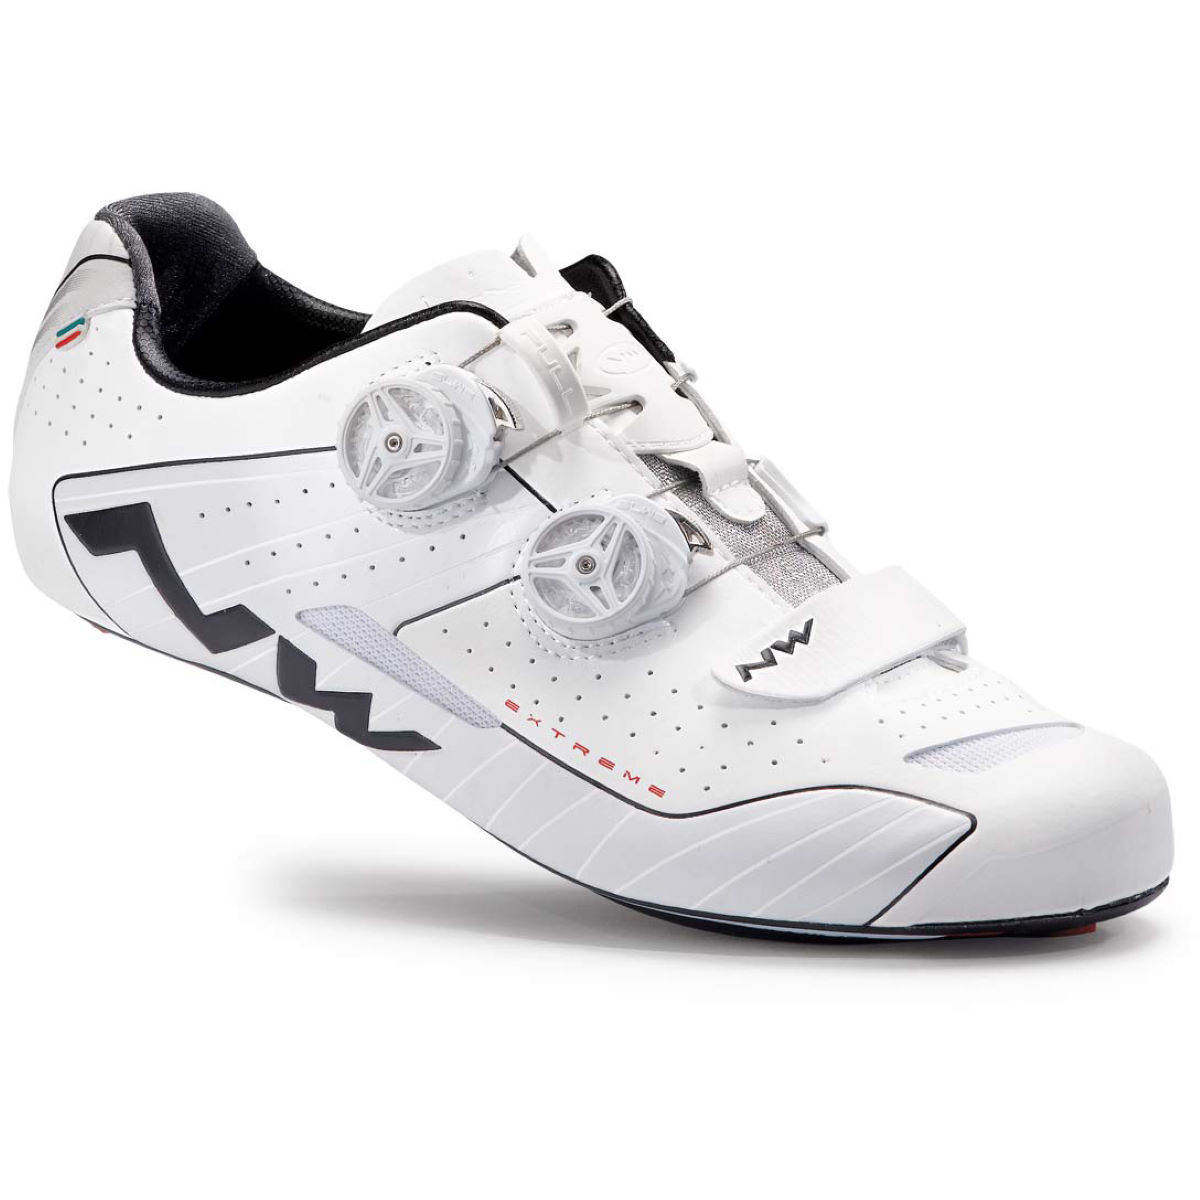 Northwave Extreme Wide Reflective Road Shoes   Road Shoes